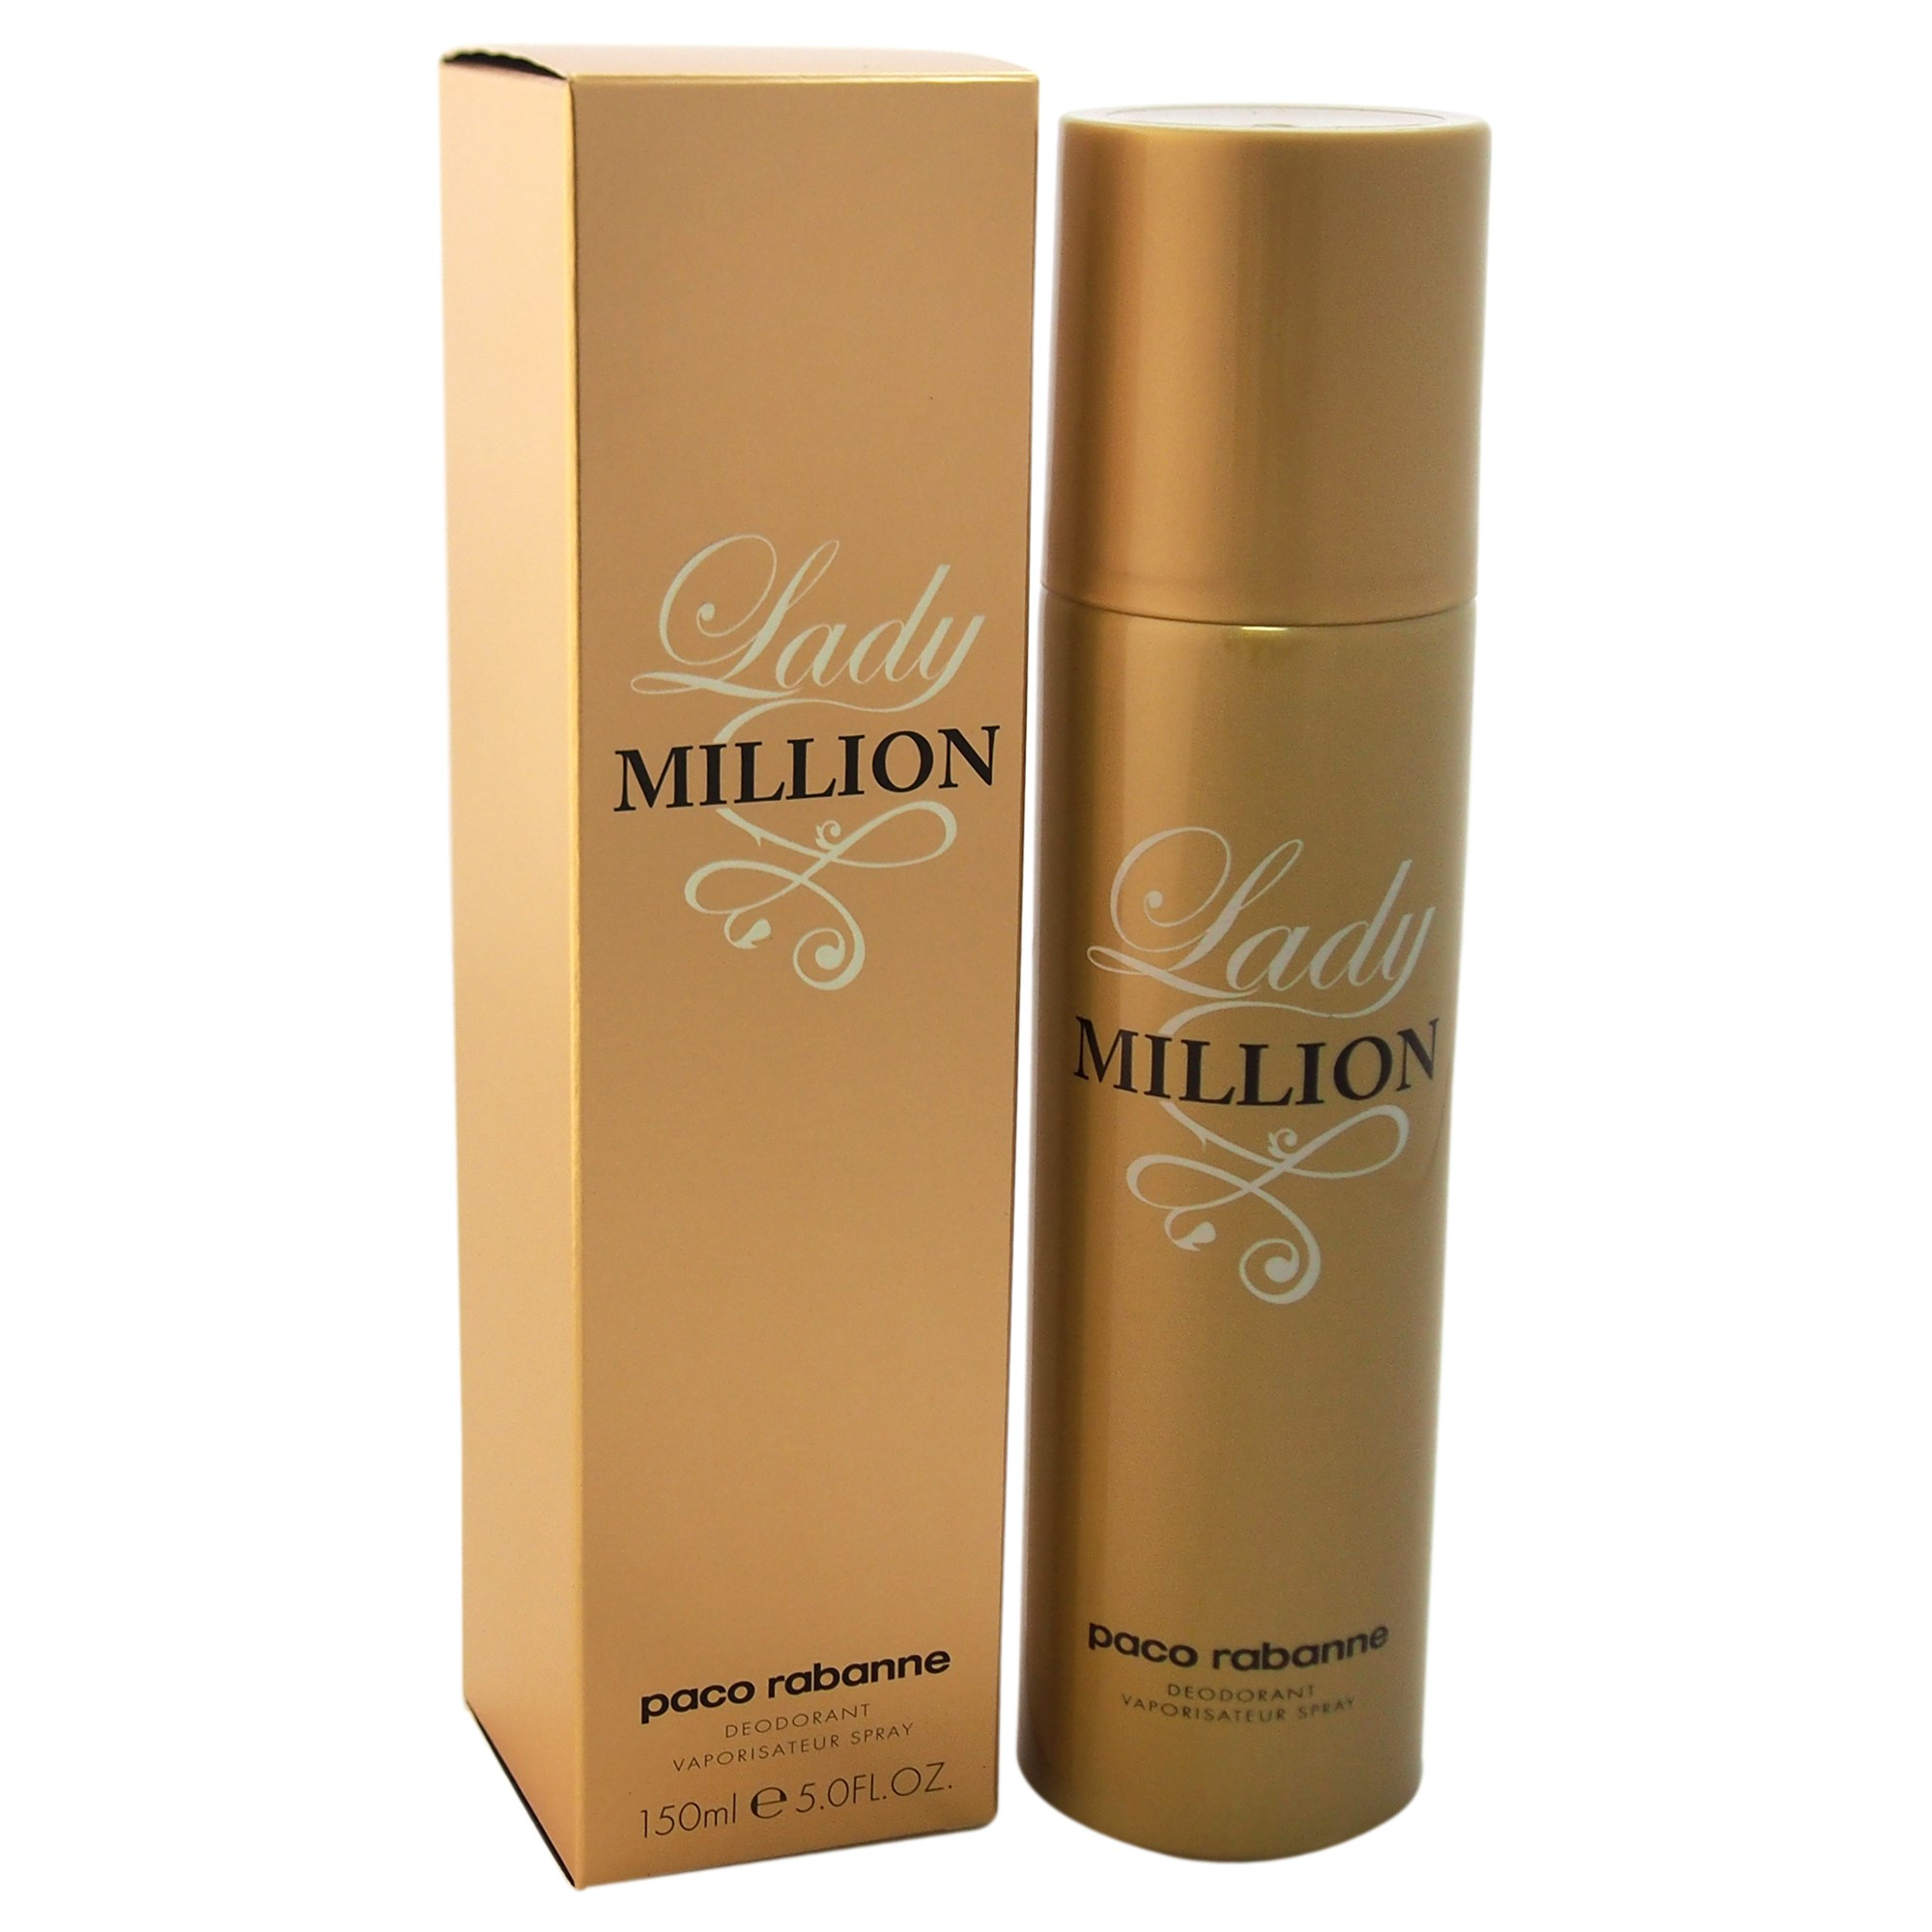 Paco Rabanne Lady Million, 5 Oz